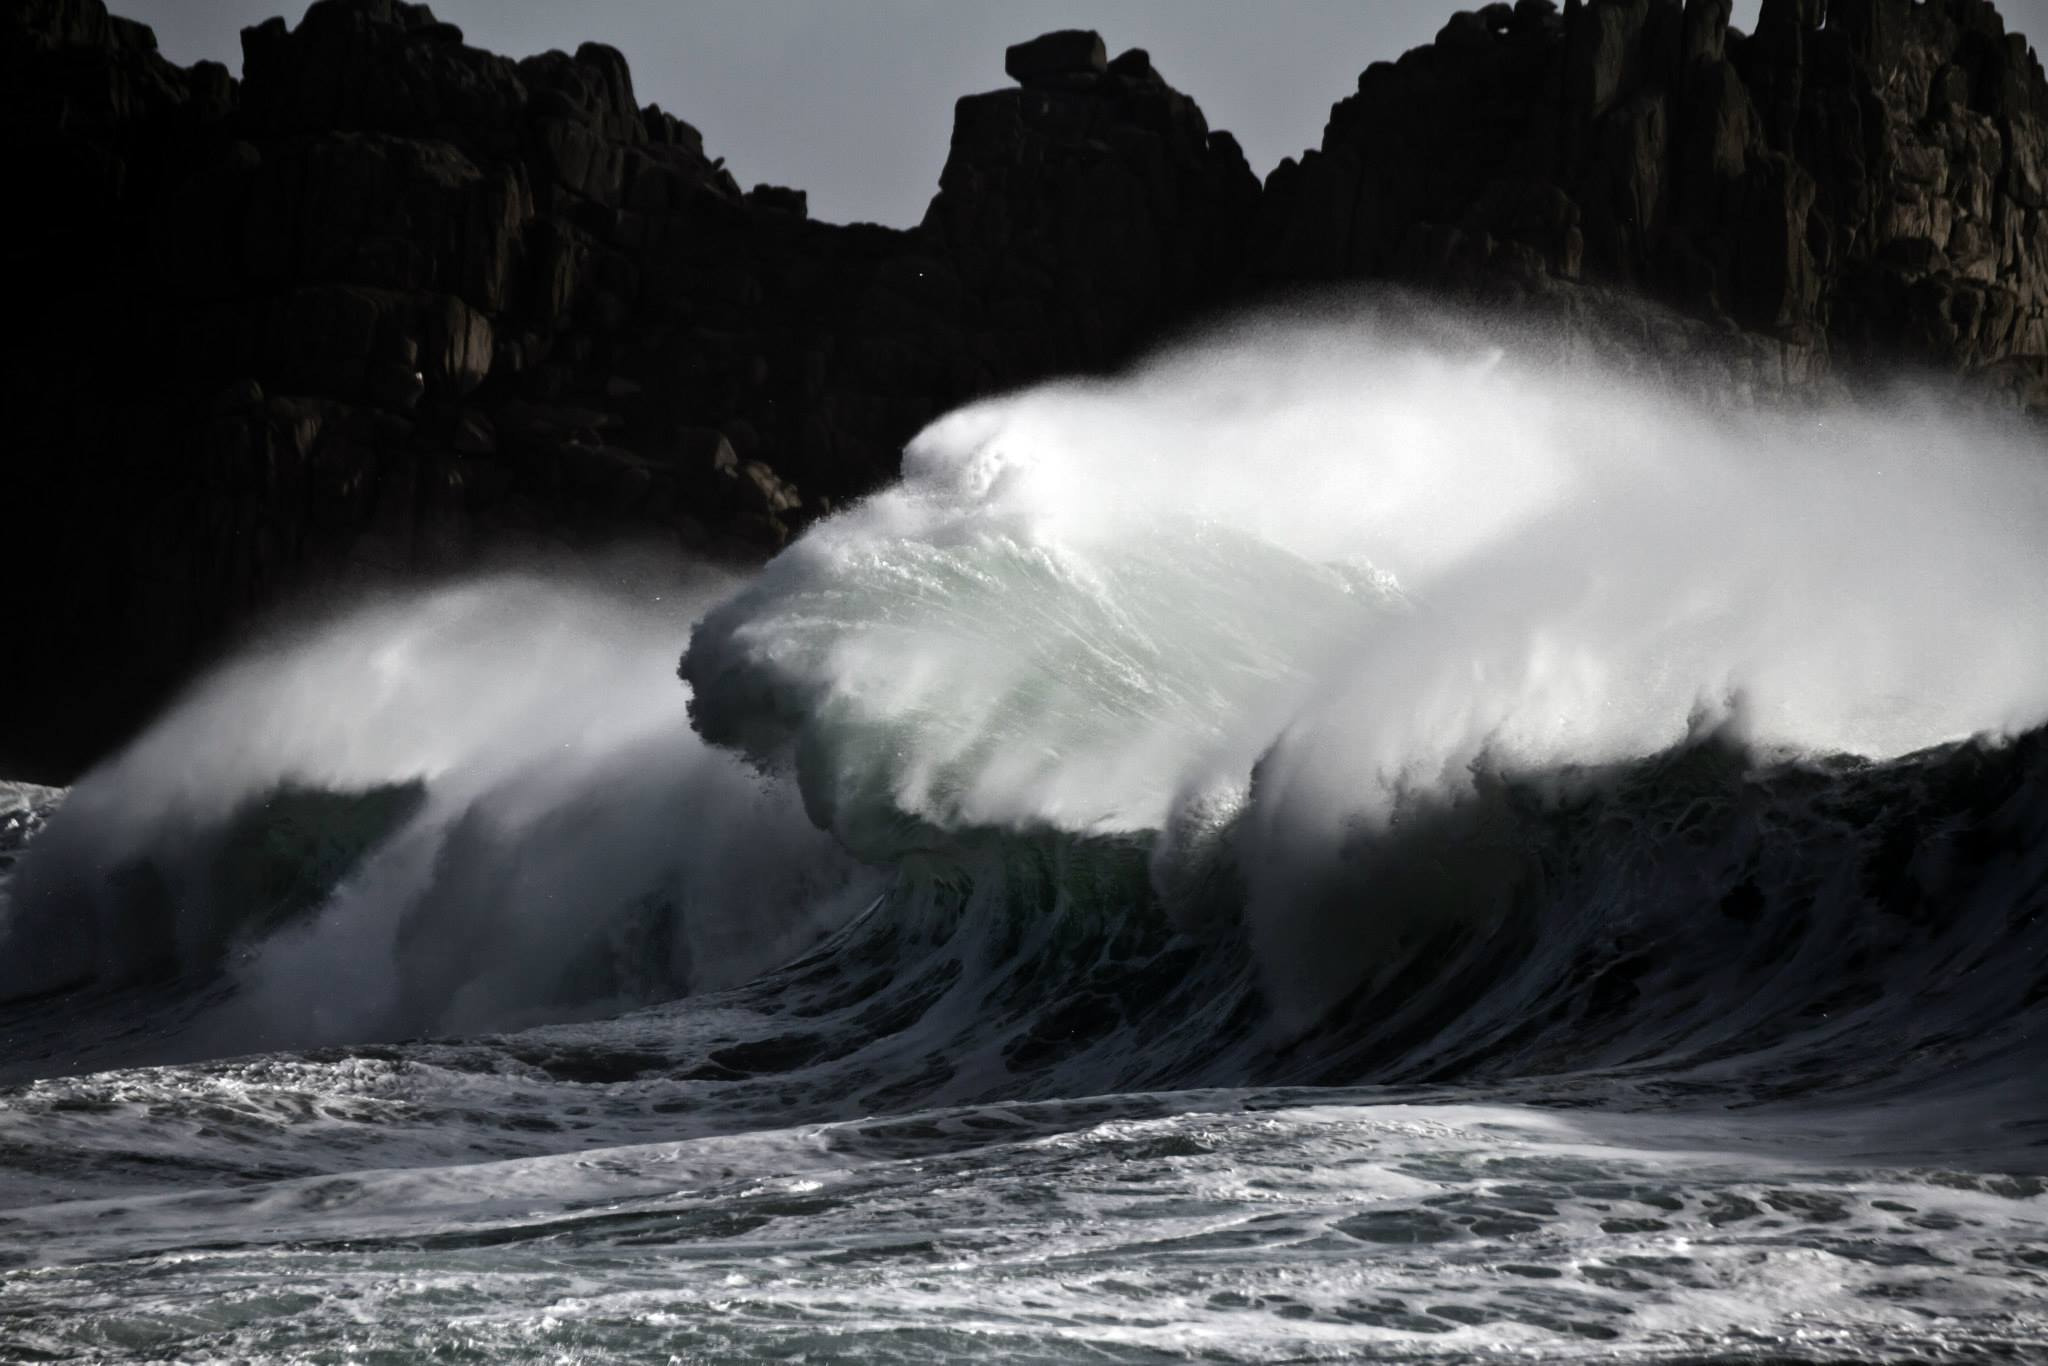 Photograph hercules storm wave by mike harvey on 500px